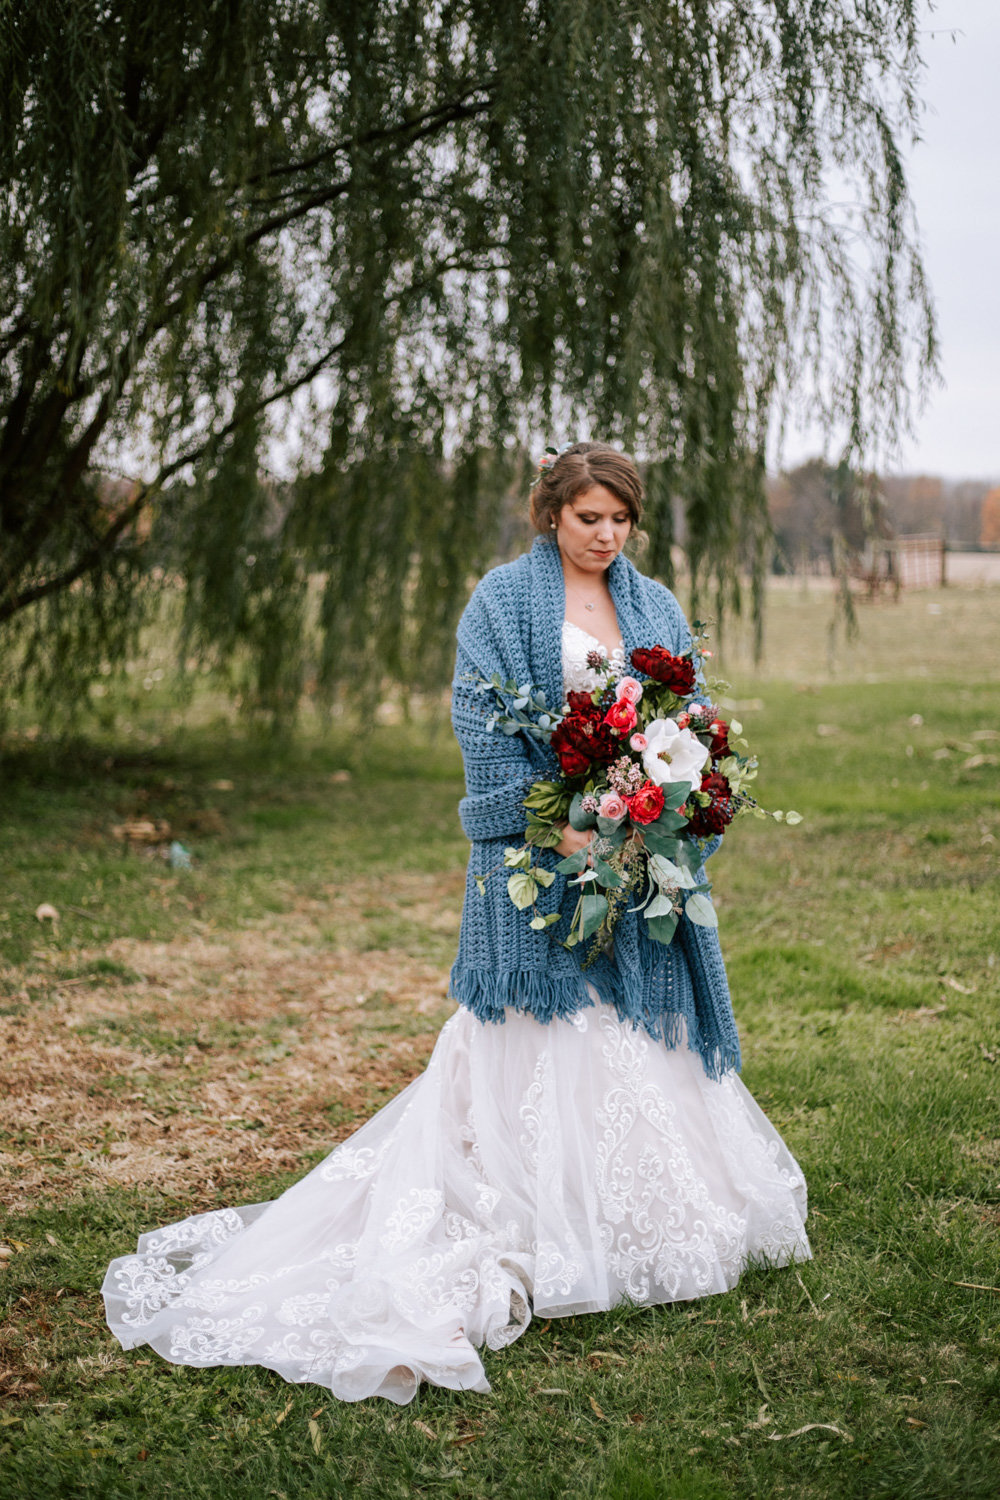 Wedding-Photographer-Lafayette-Indiana-79